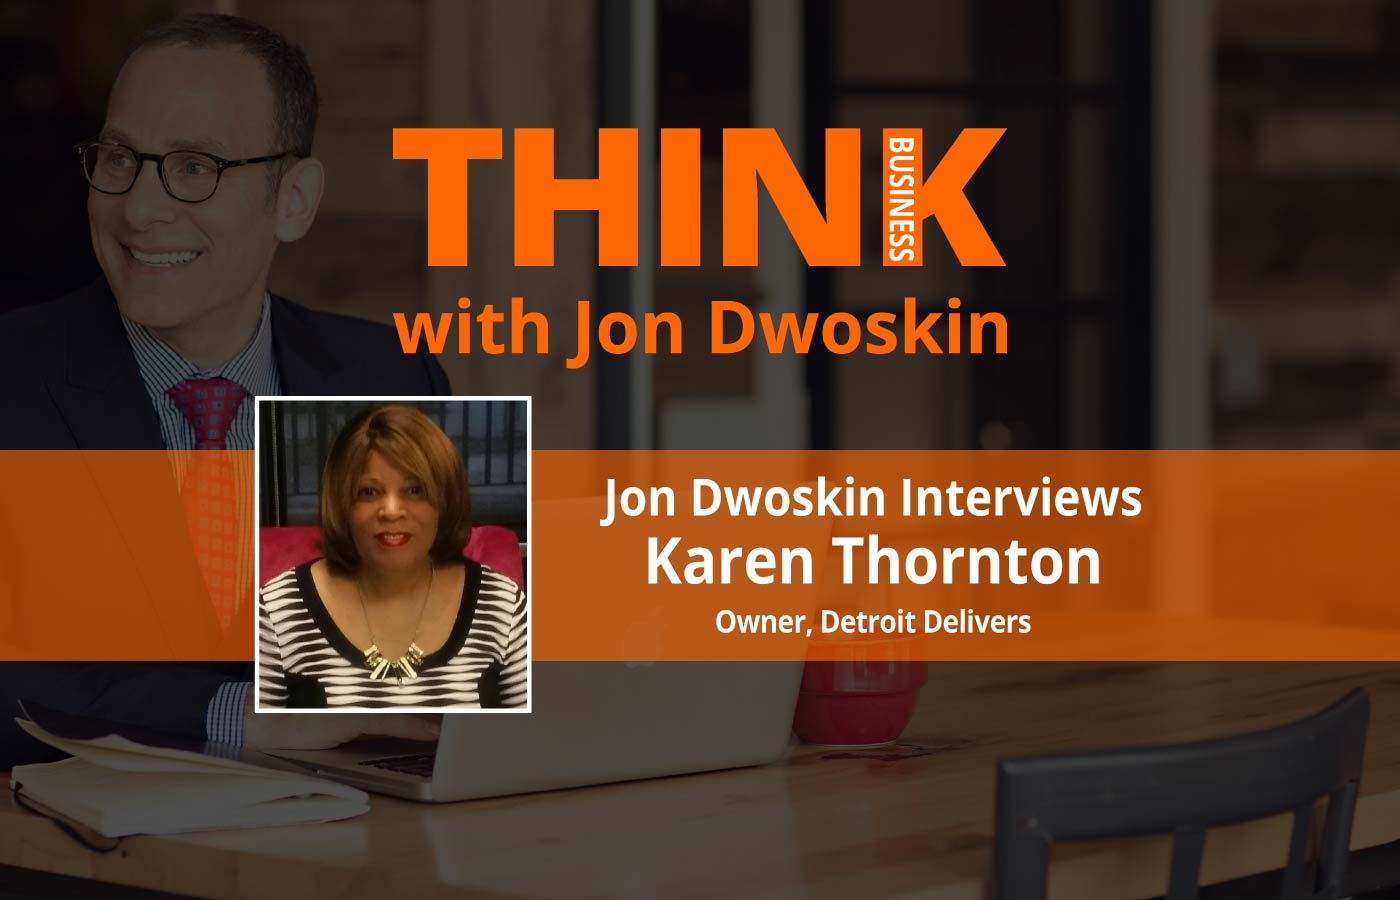 THINK Business Podcast: Jon Dwoskin Interviews Karen Thornton, Owner of Detroit Delivers